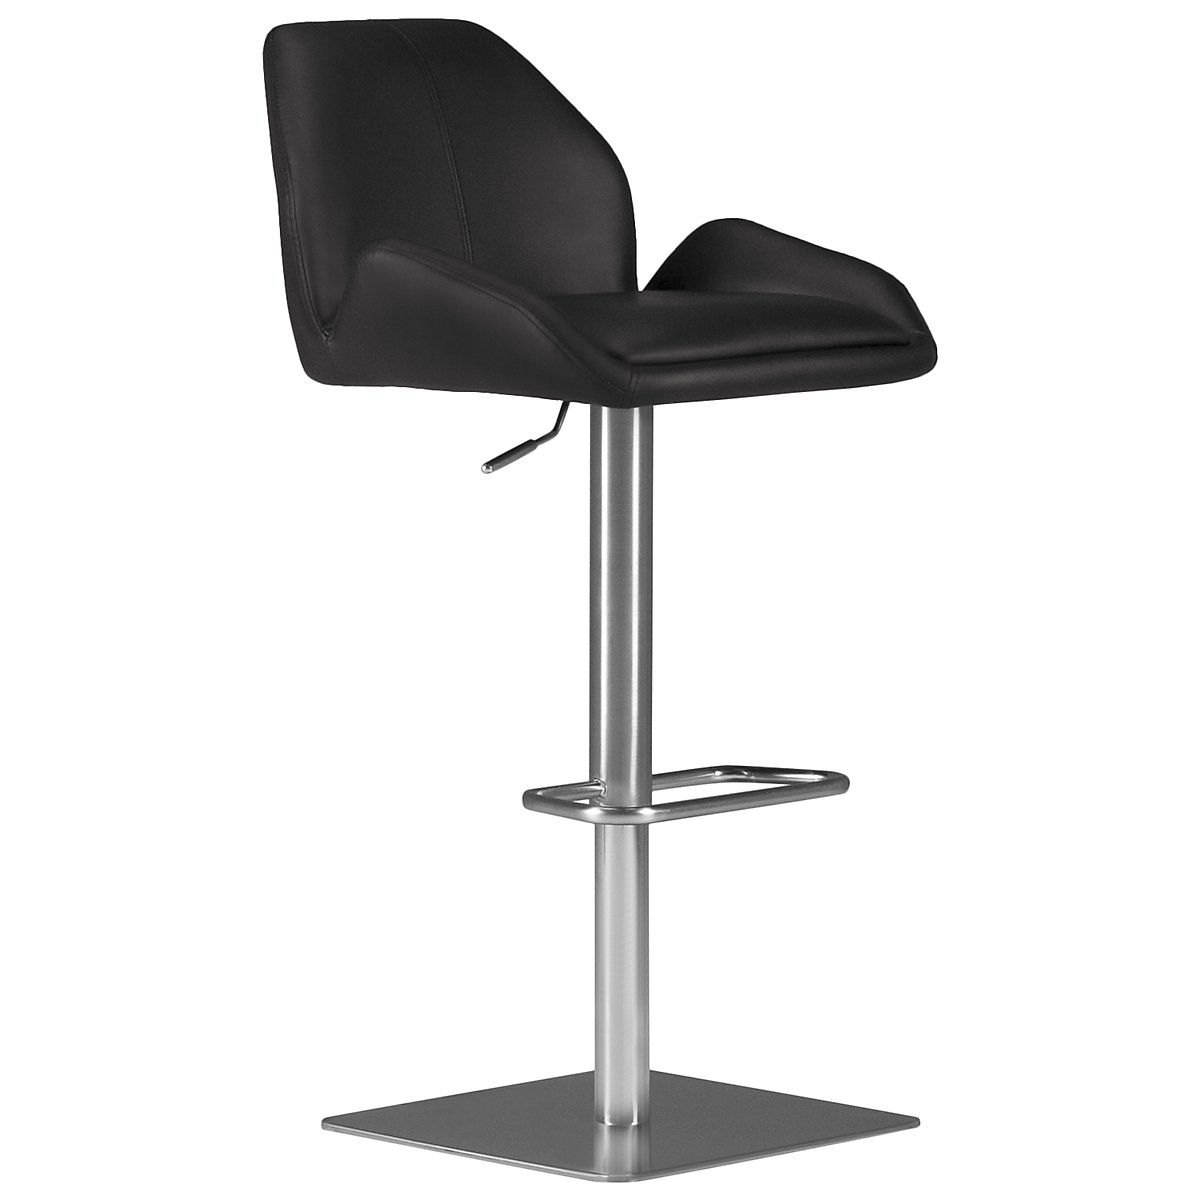 Fairfax Black Upholstered Adjustable Stool